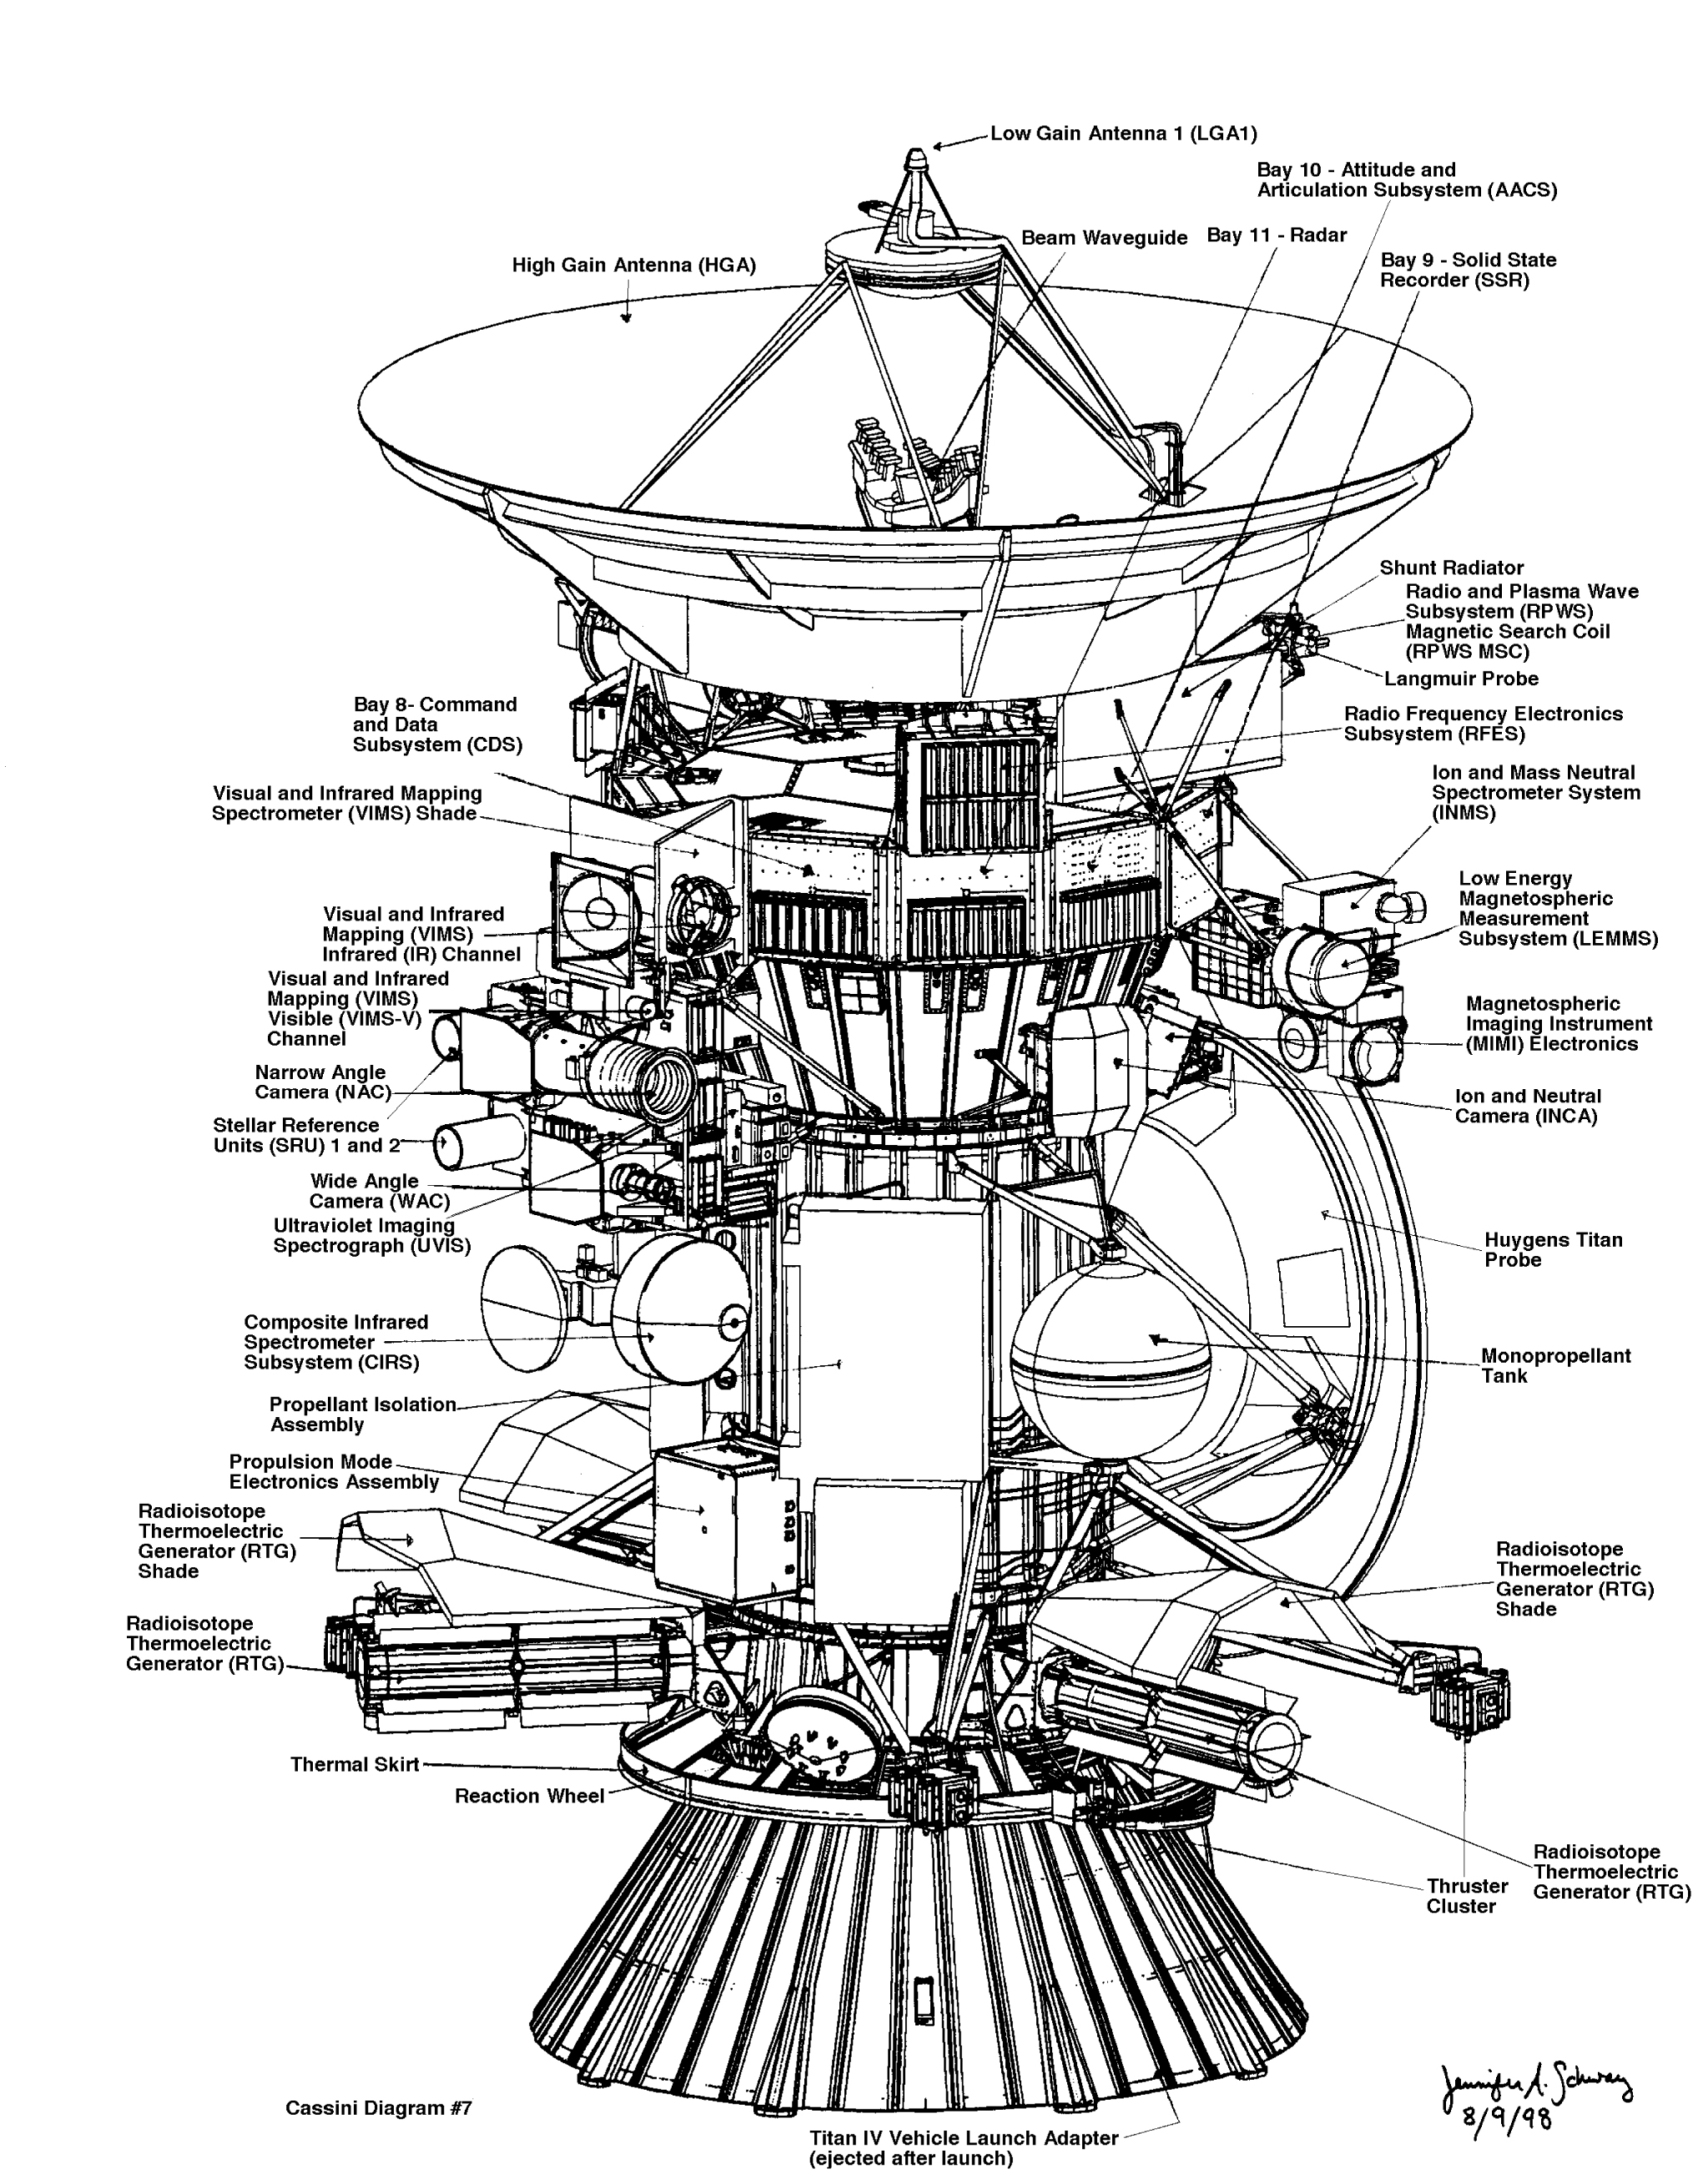 Cassini Diagram No 7